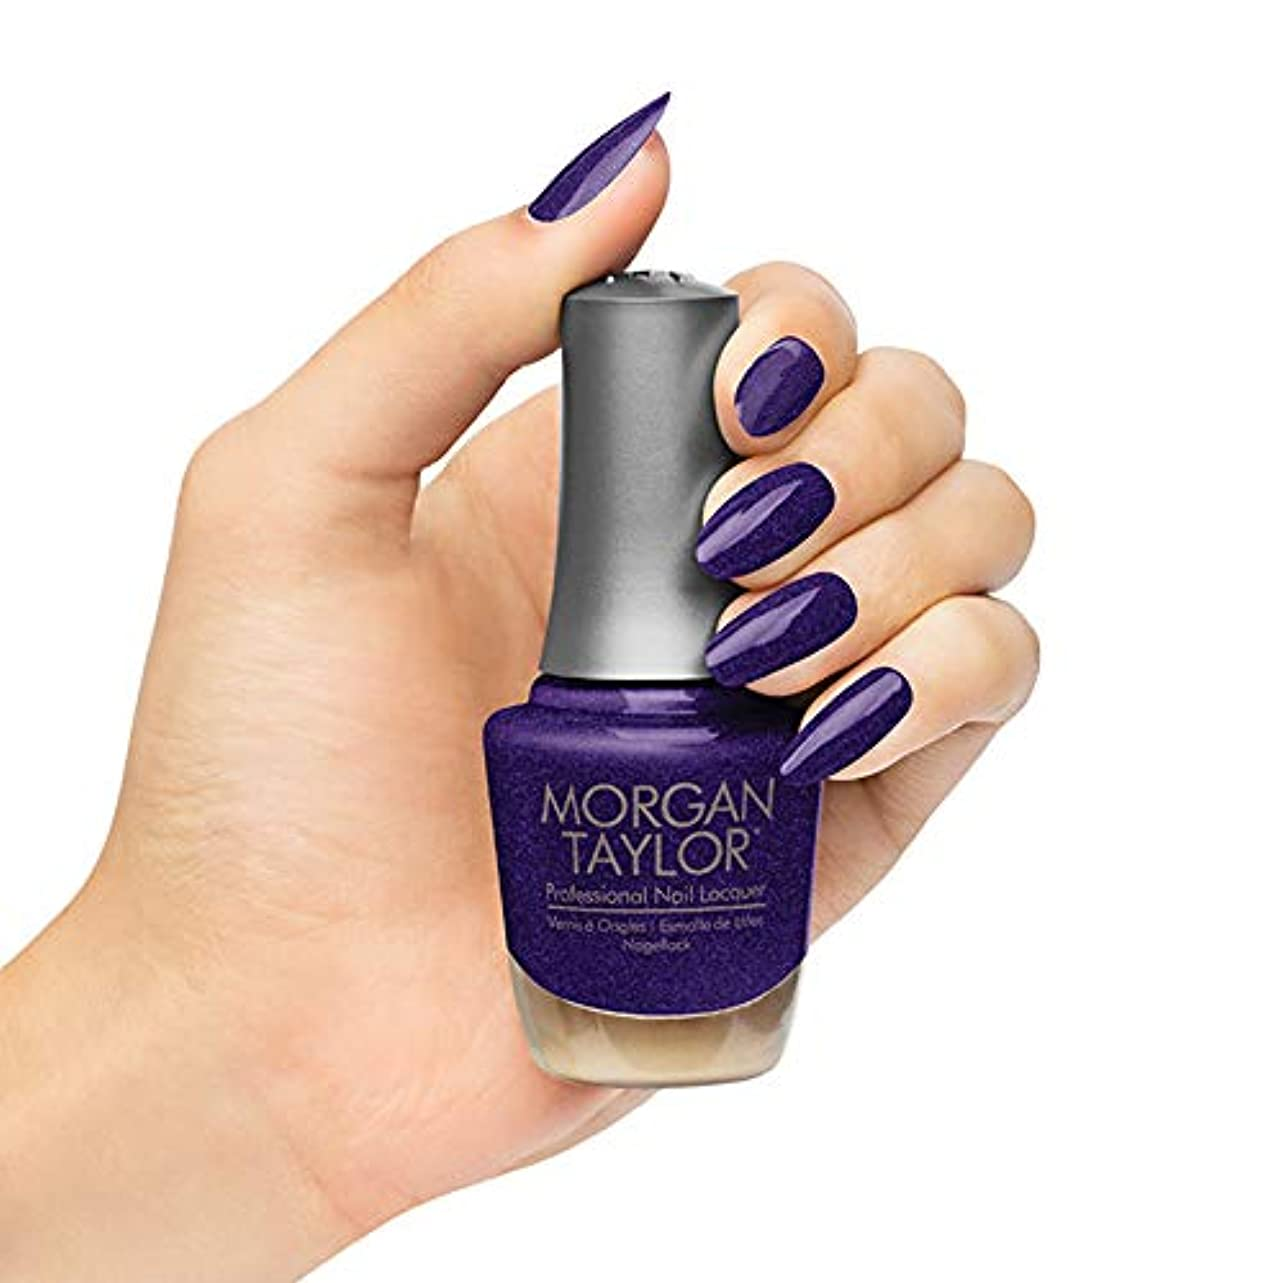 Morgan Taylor - Professional Nail Lacquer - Best Face Forward - 15 mL / 0.5oz